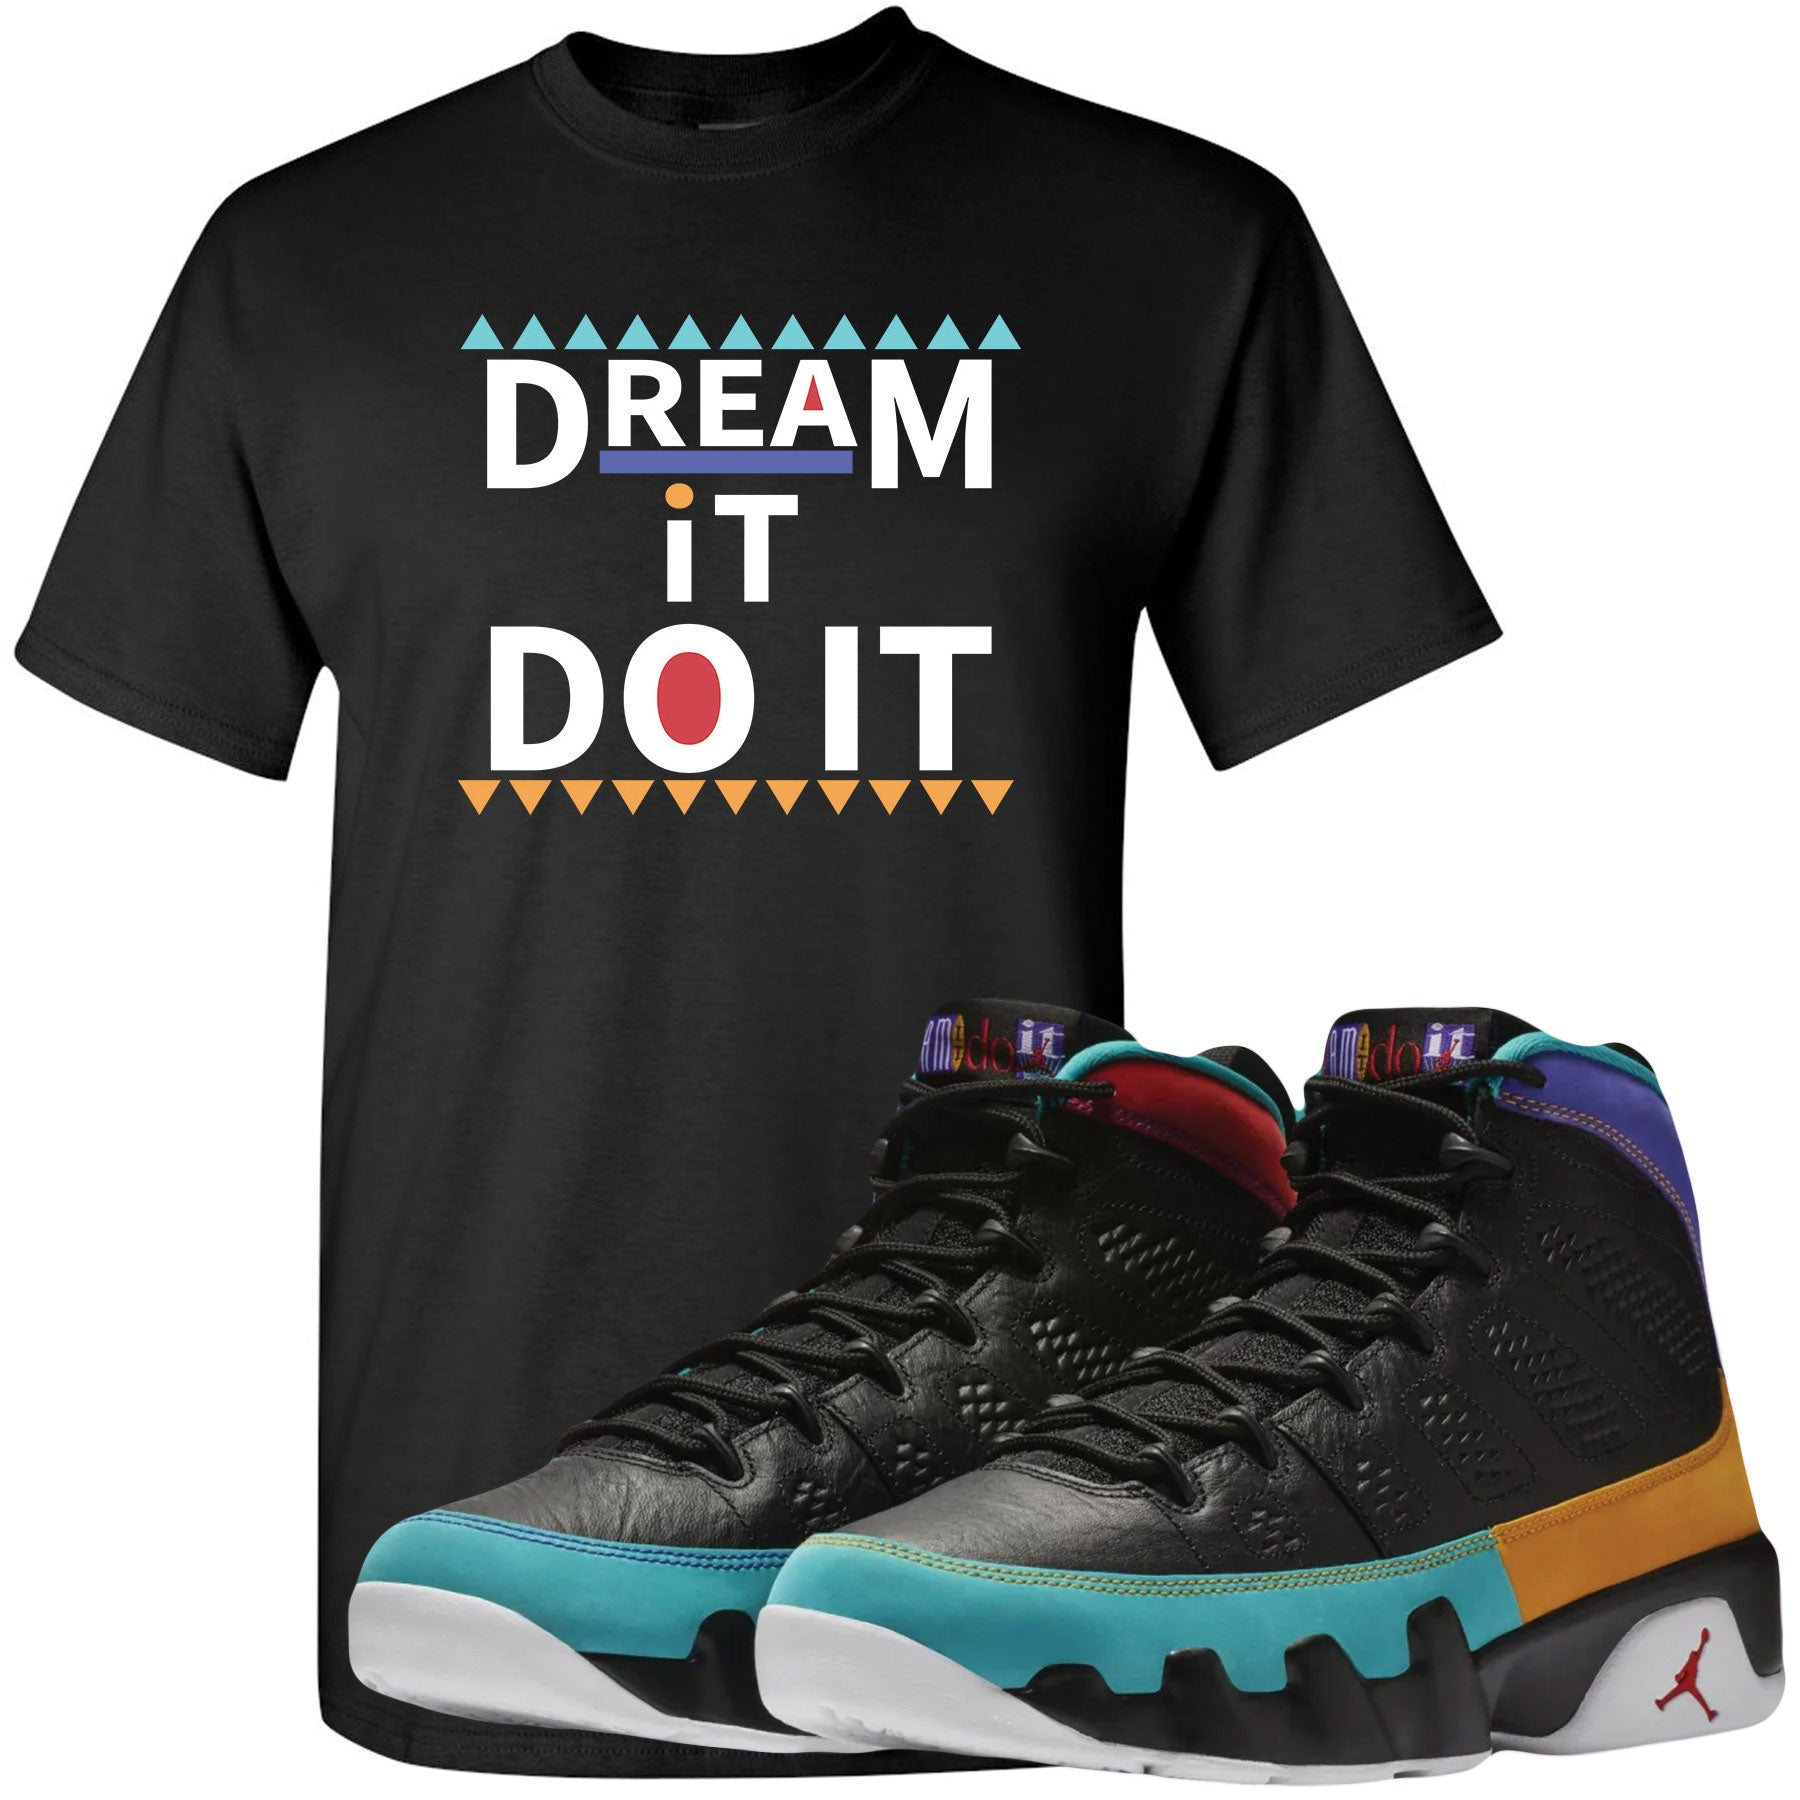 huge selection of 42a45 f7909 ... Shop sneaker matching clothing to match your pair of Jordan 9 Dream It  Do It Sneakers ...